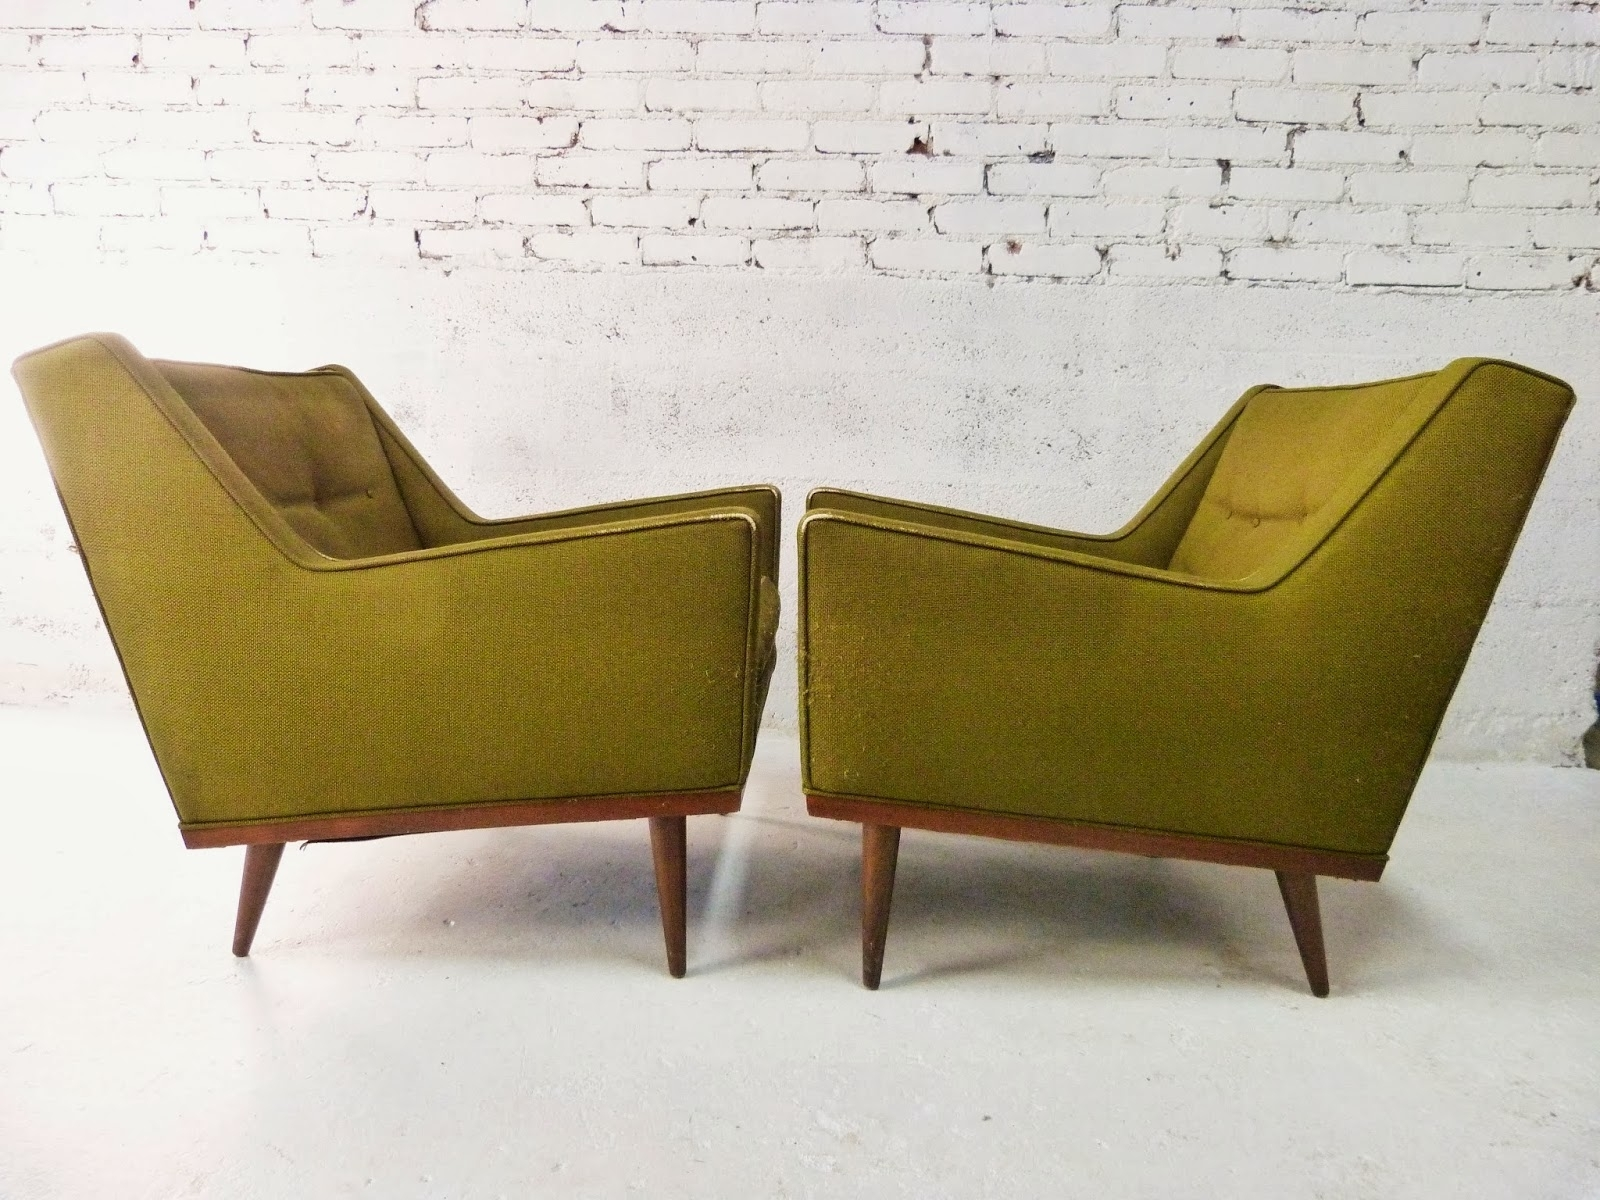 Retro Sofas And Chairs For Preferred Modern Retro Furniture (View 9 of 15)